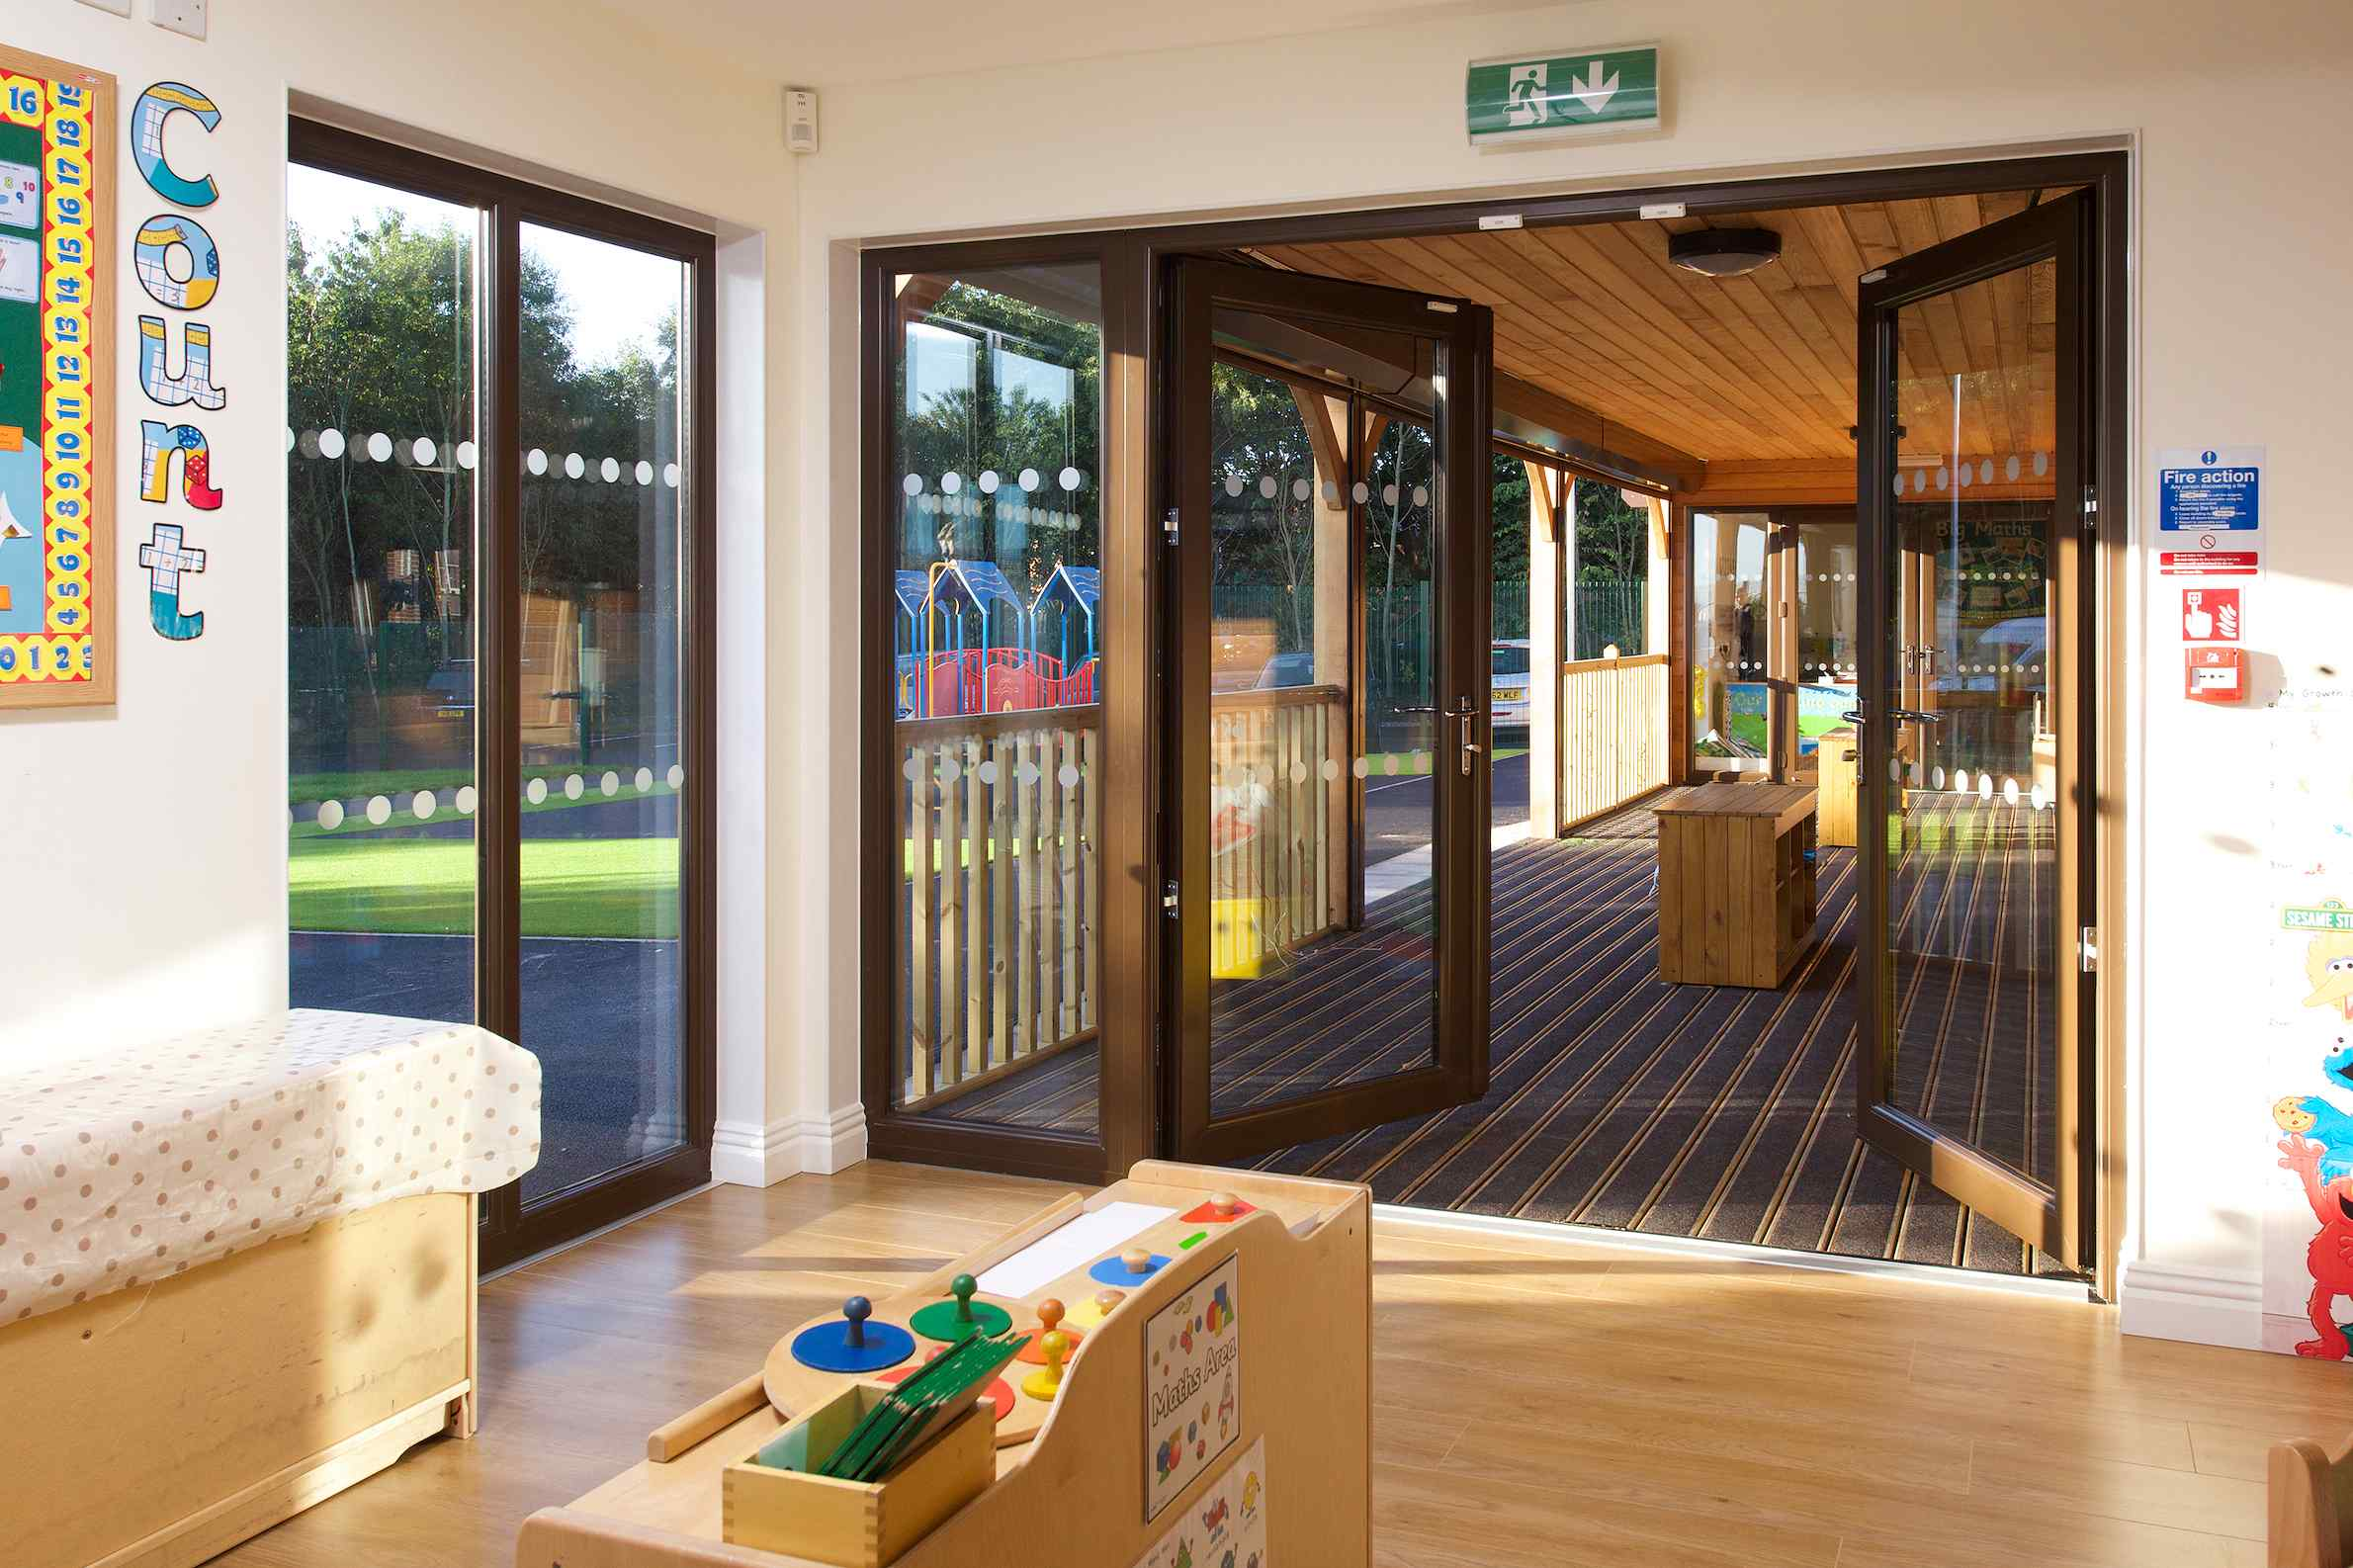 Modular Nursery Classrooms Preschool Buildings For Education